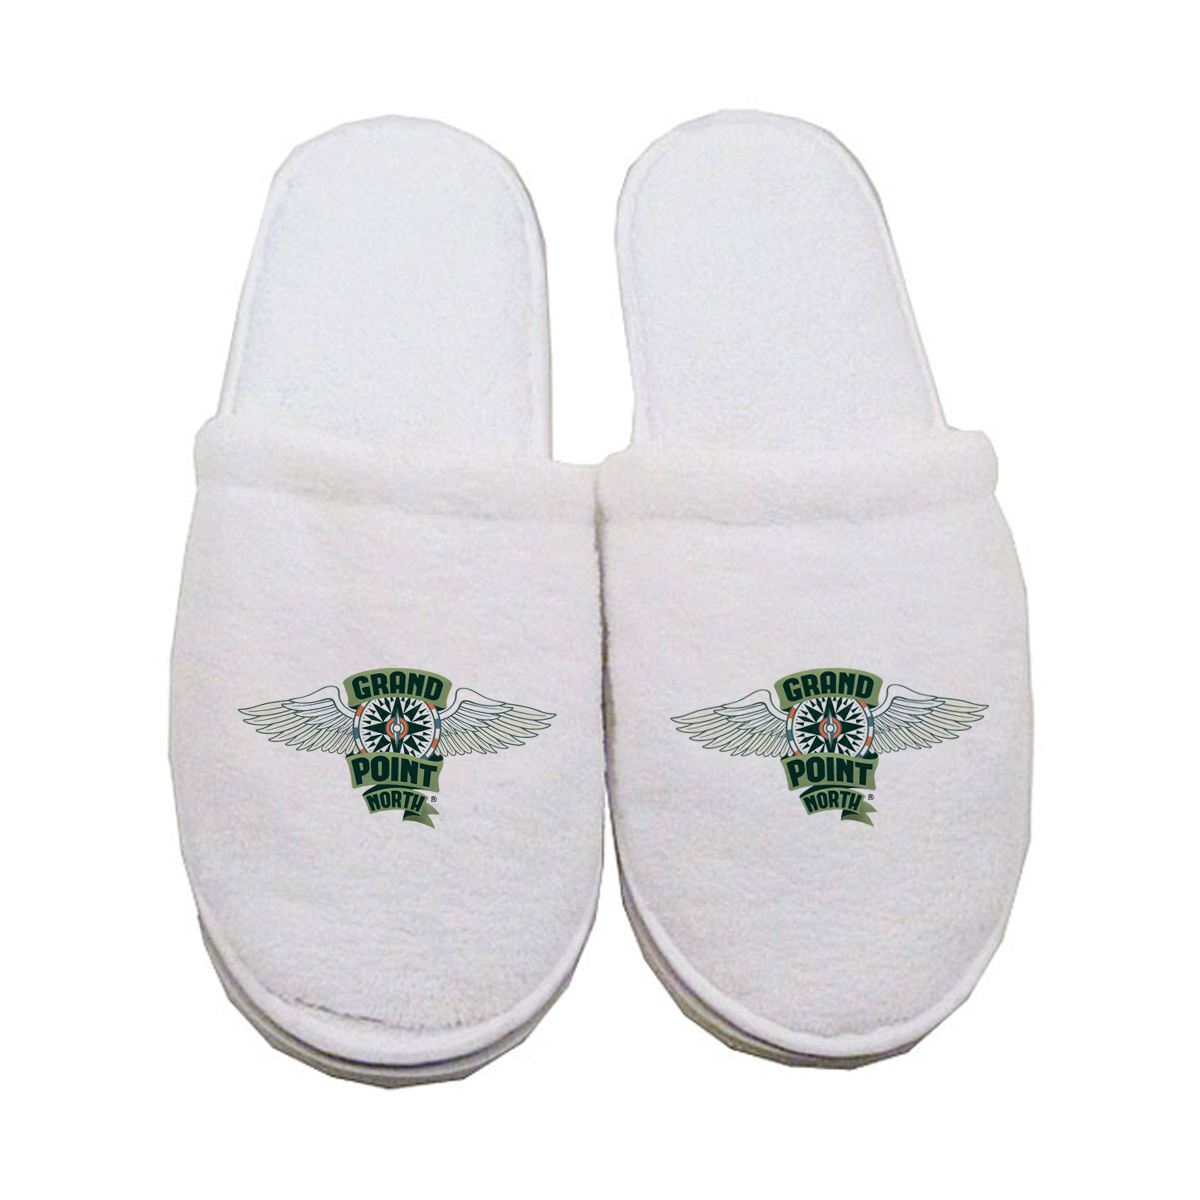 Grand Point North ® Slippers